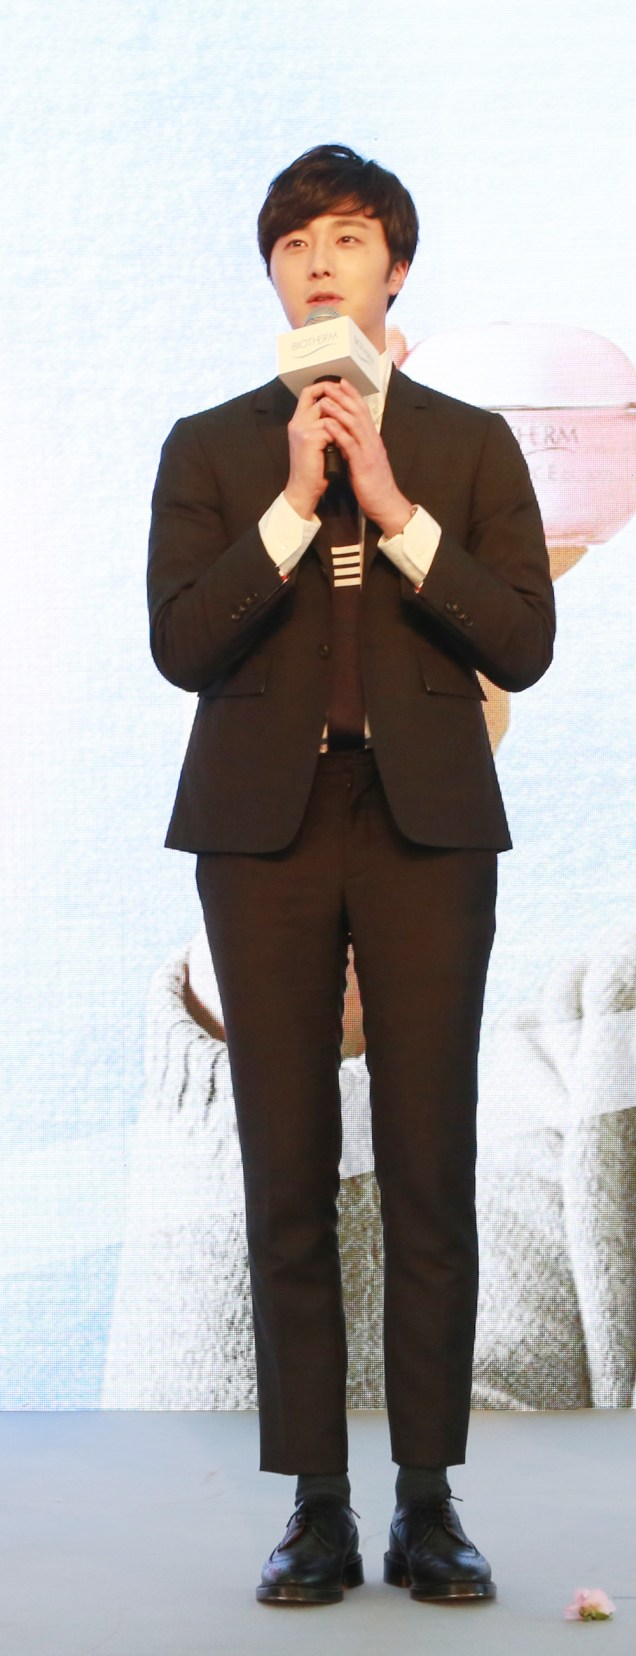 2015 3 20 Jung Il-woo at a Biotherm Event in Beijing, China. 13